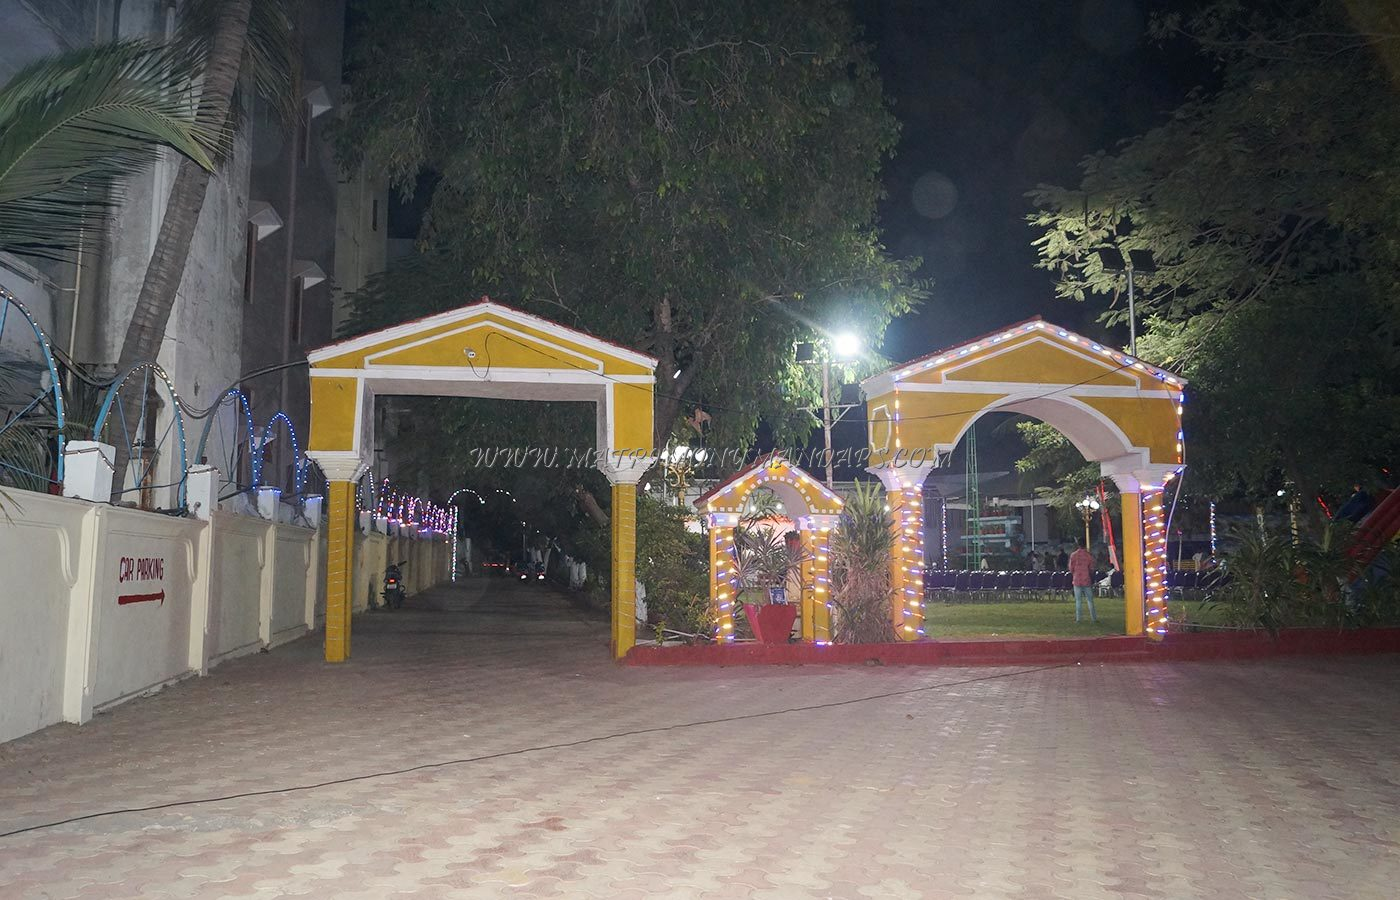 Find the availability of the Sri Sreerama Kalyana Mandapam in Champapet, Hyderabad and avail special offers